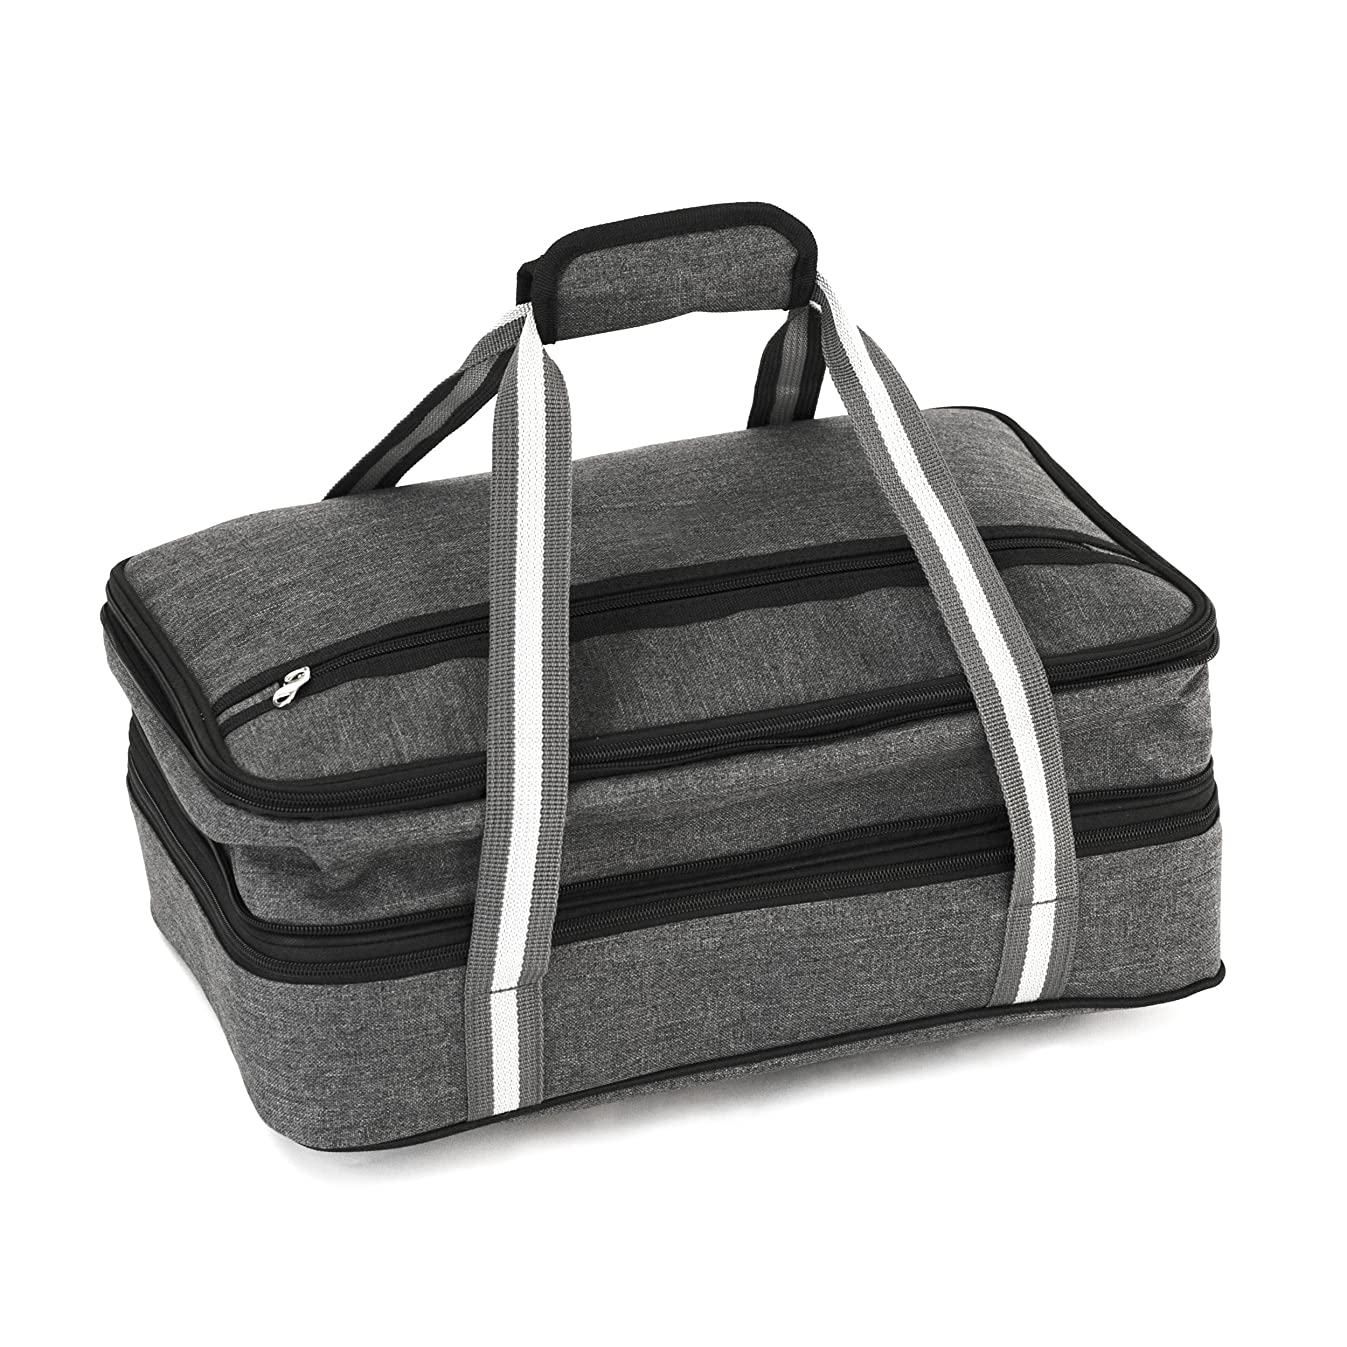 Insulated Expandable Double Casserole Carrier and Lasagna Holder for Picnic Potluck Beach Day Trip Camping Hiking - Hot and Cold Thermal Bag in Gray – Tote can hold 11 x 15 or 9 x 13 baking dish